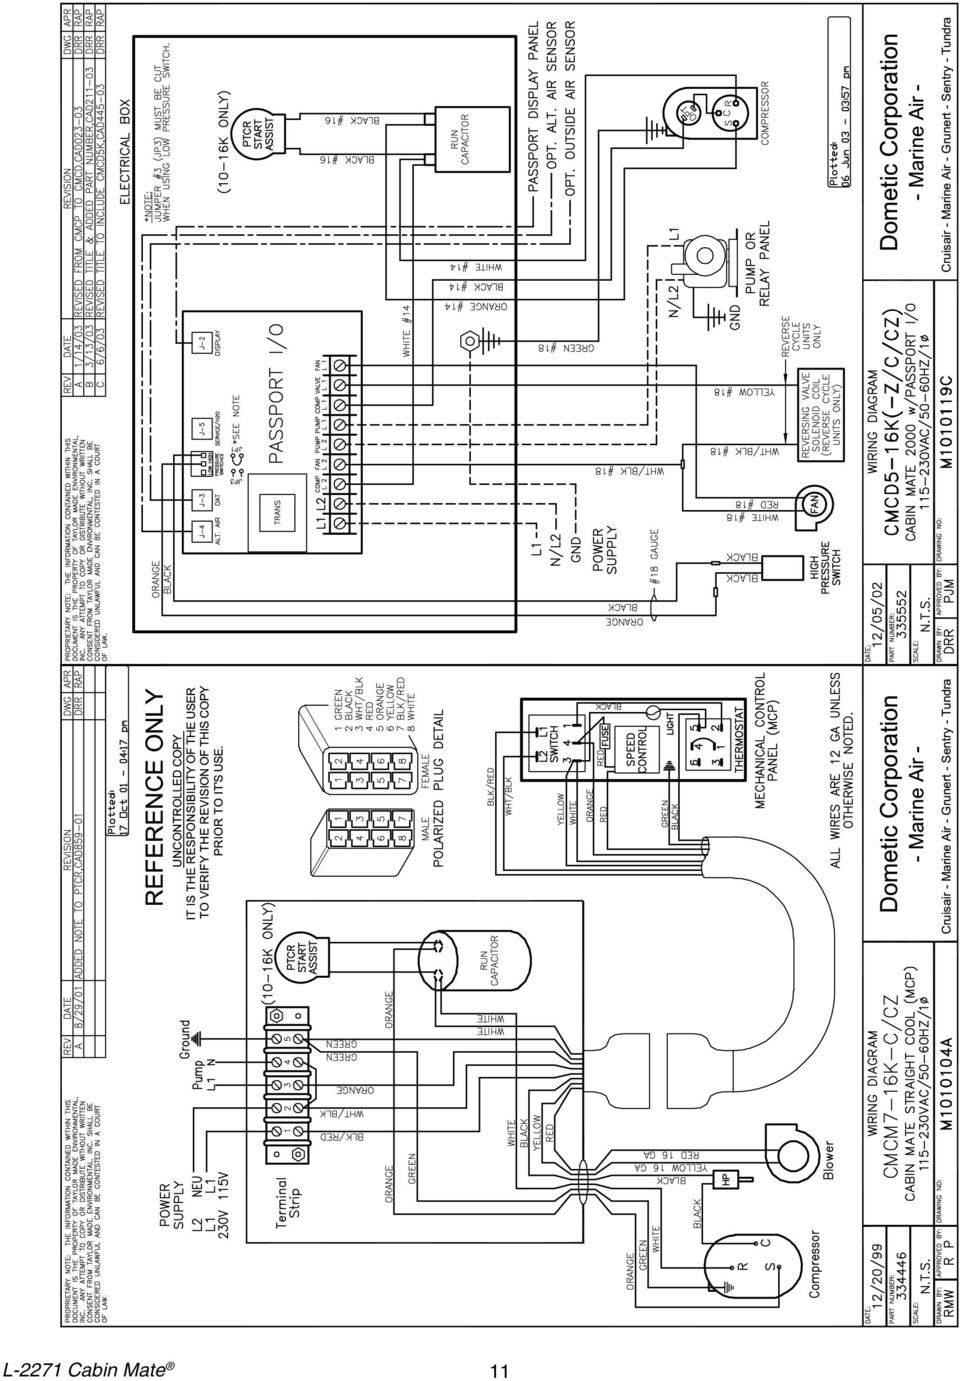 Waeco Cf 50 Wiring Diagram Free Download • Oasis-dl.co